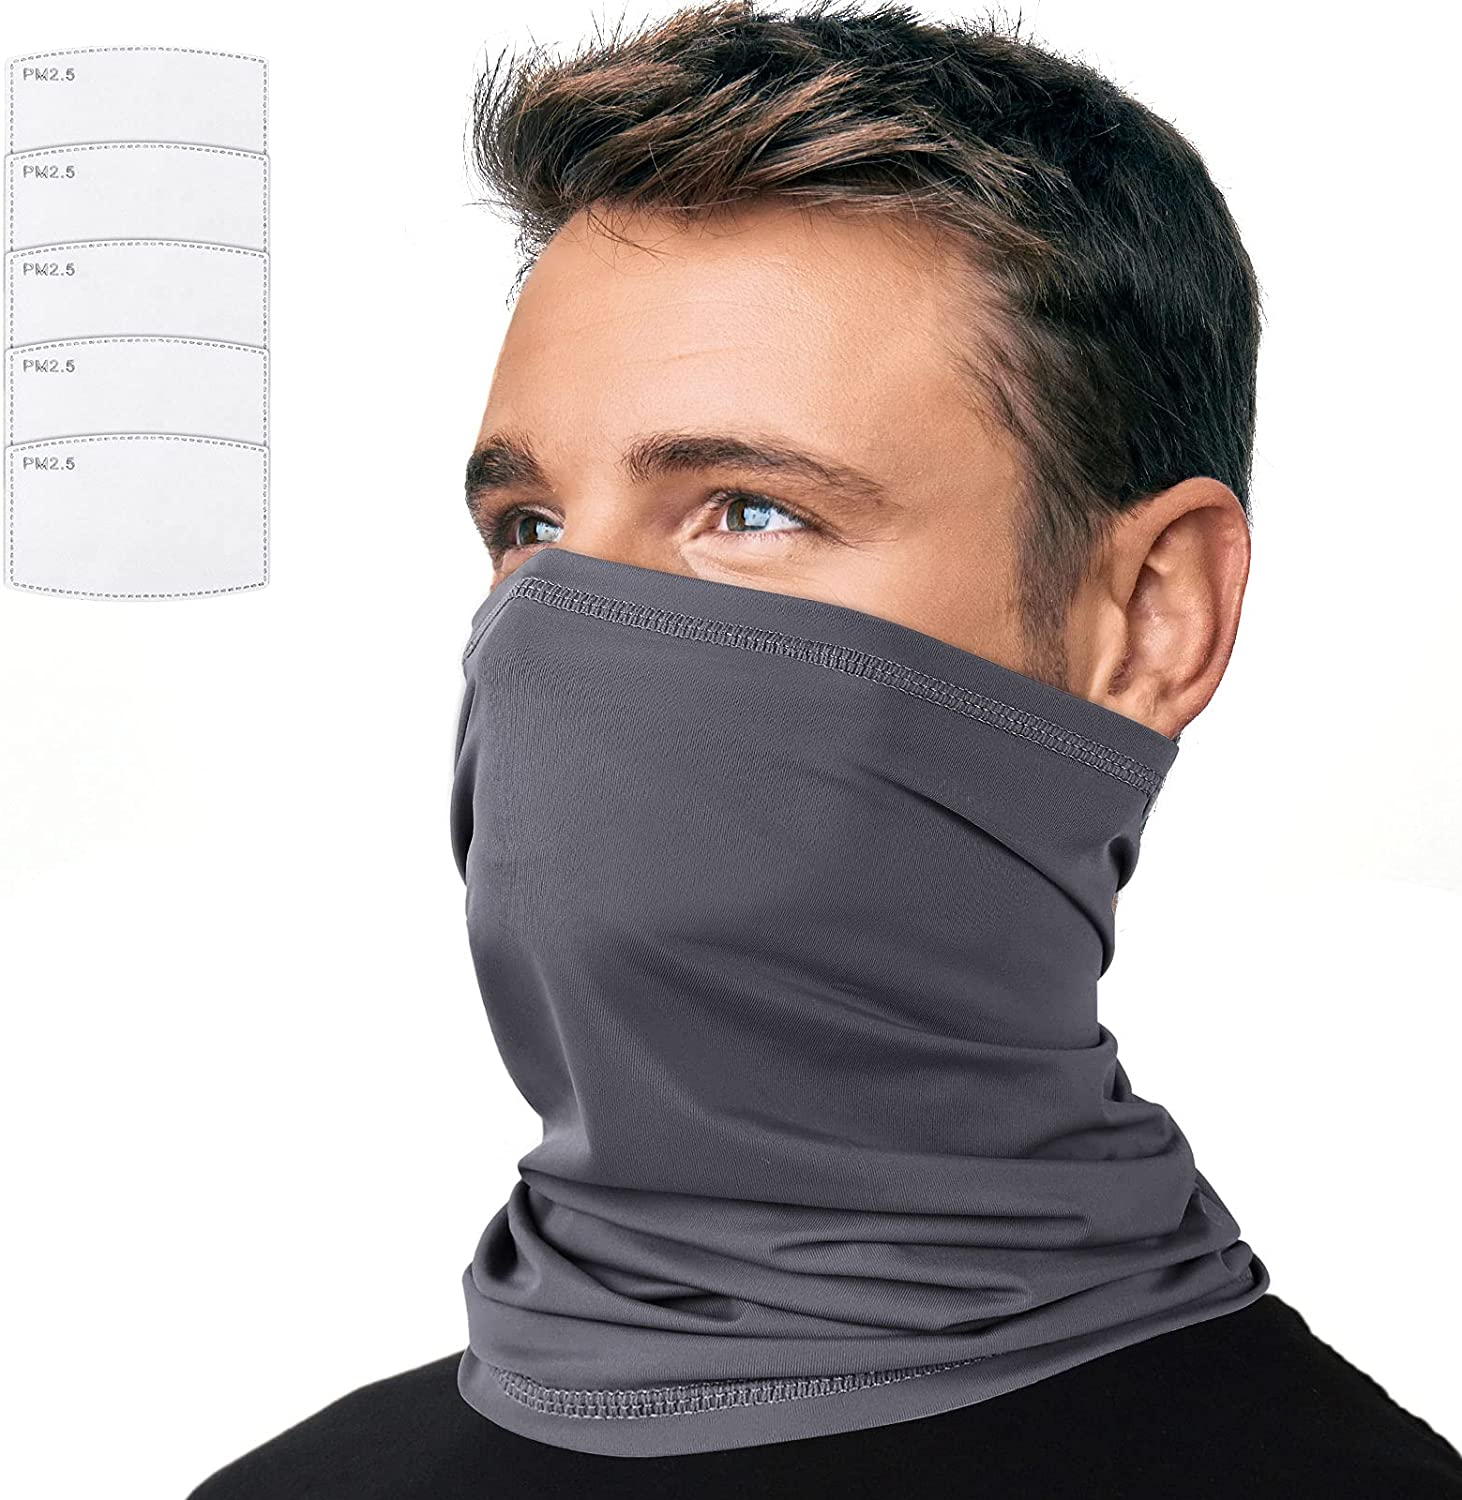 Cooling Neck Gaiter Mask with Filter UPF 50+ Sun Protection for Men and Women